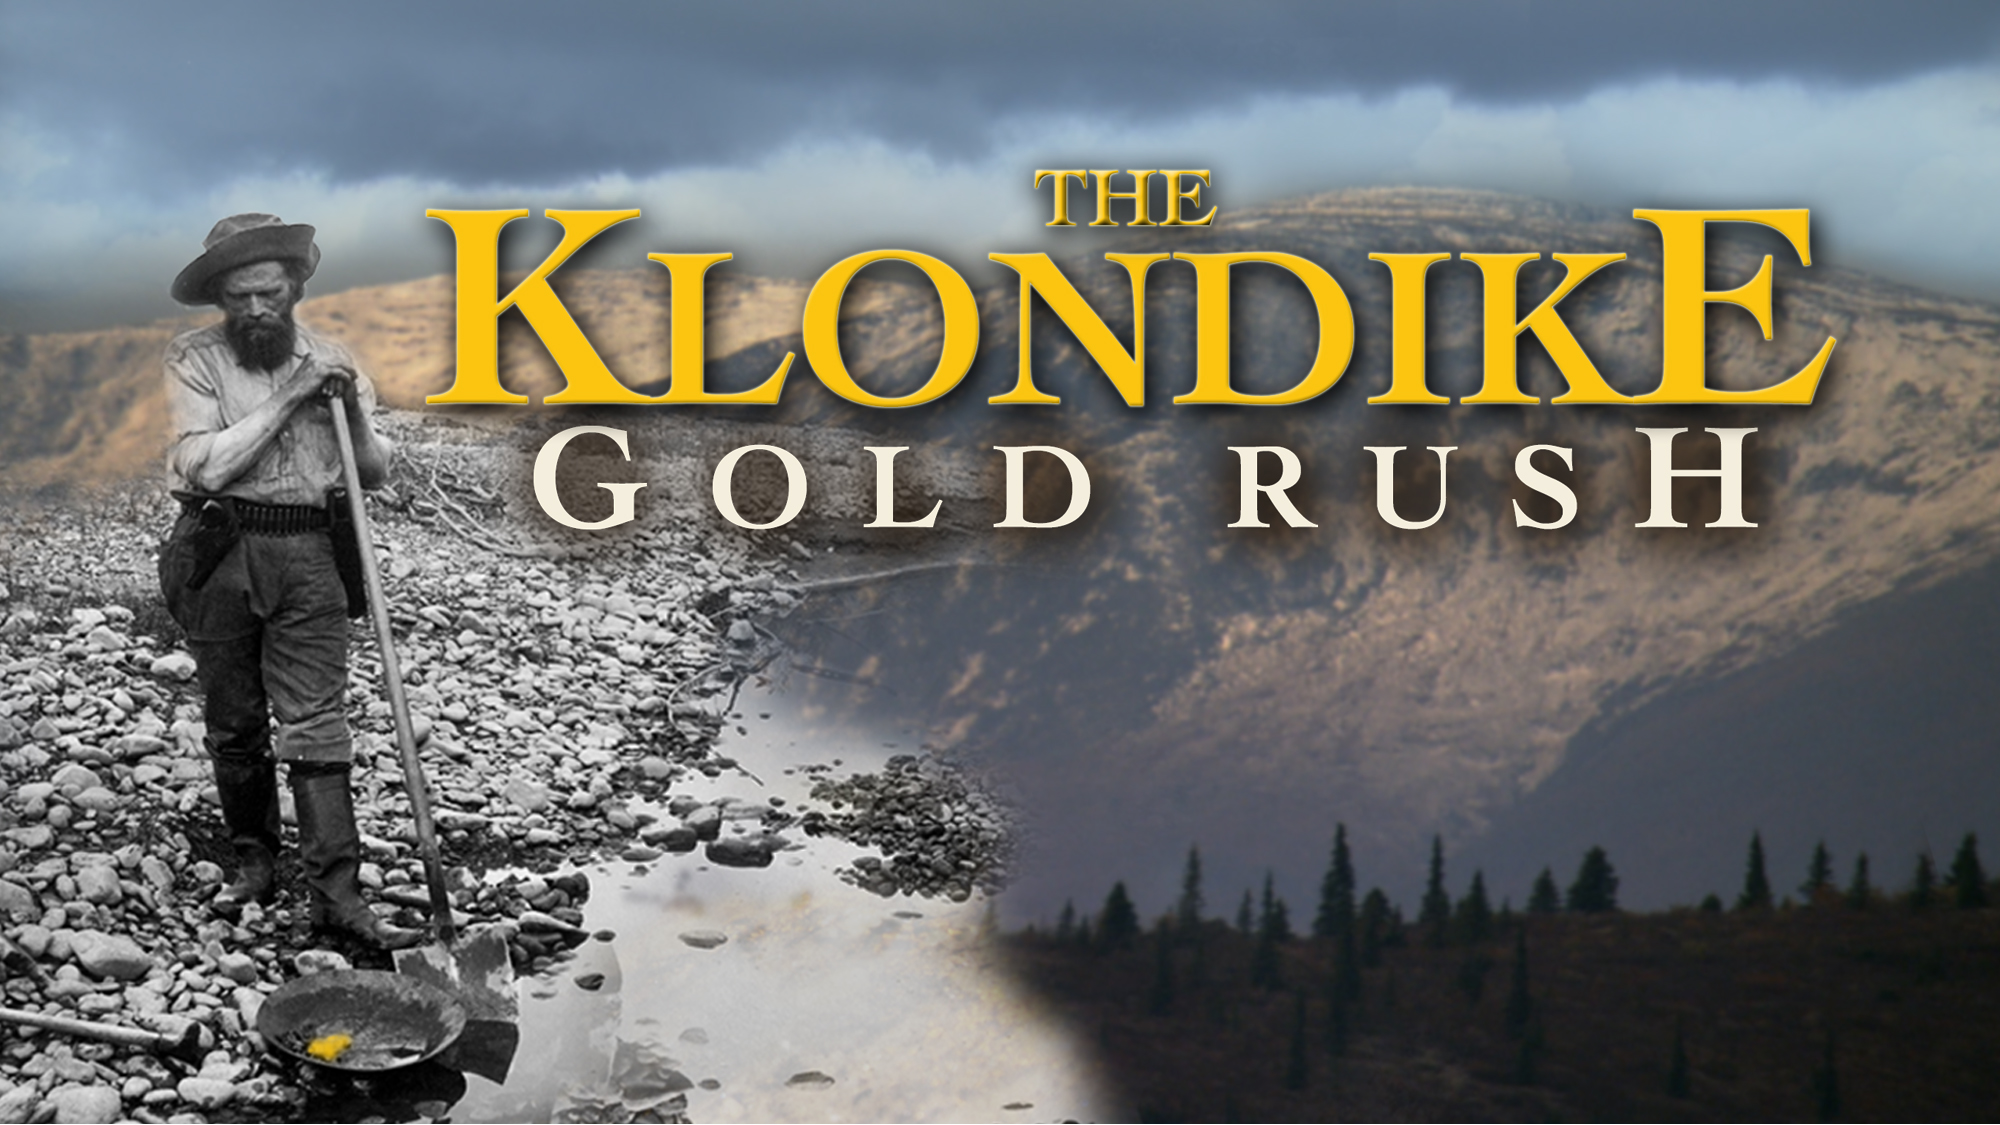 klondike gold rush The klondike gold rush was a frenzy of gold rush immigration to and gold prospecting in the klondike near dawson city in the yukon territory, canada, after gold was.